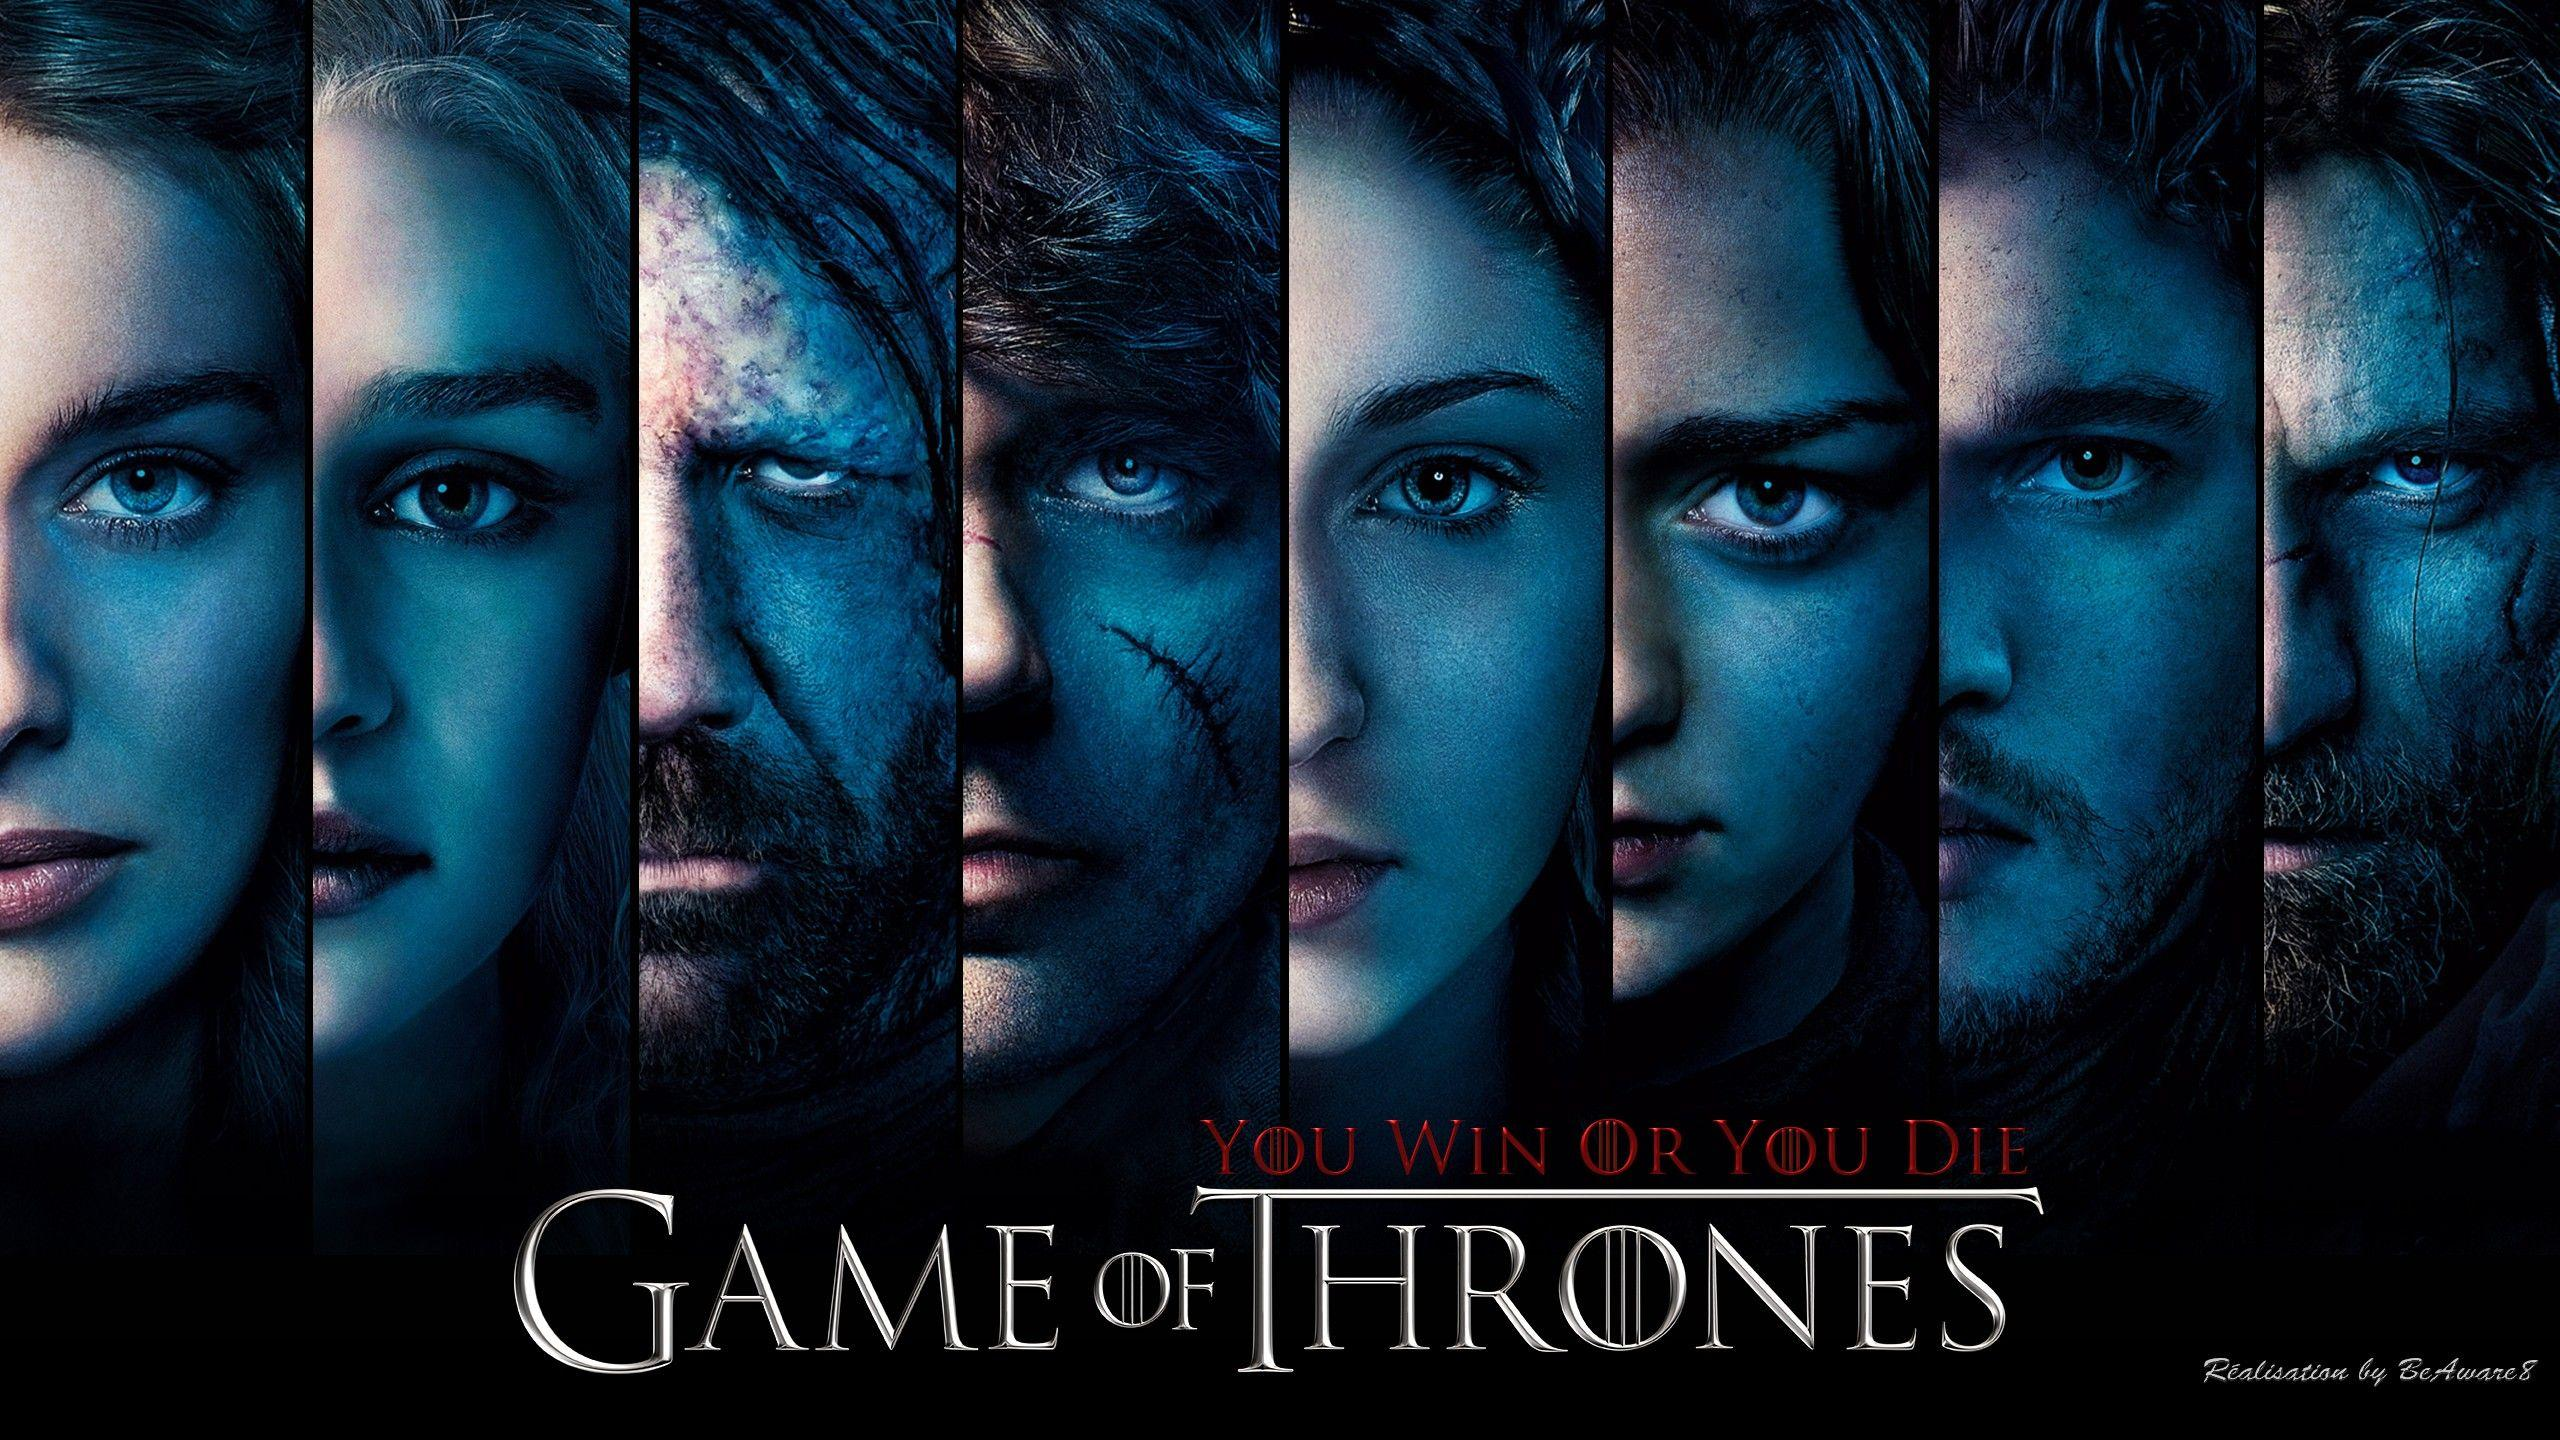 50+ Game of Thrones wallpapers ·① Download free awesome full HD